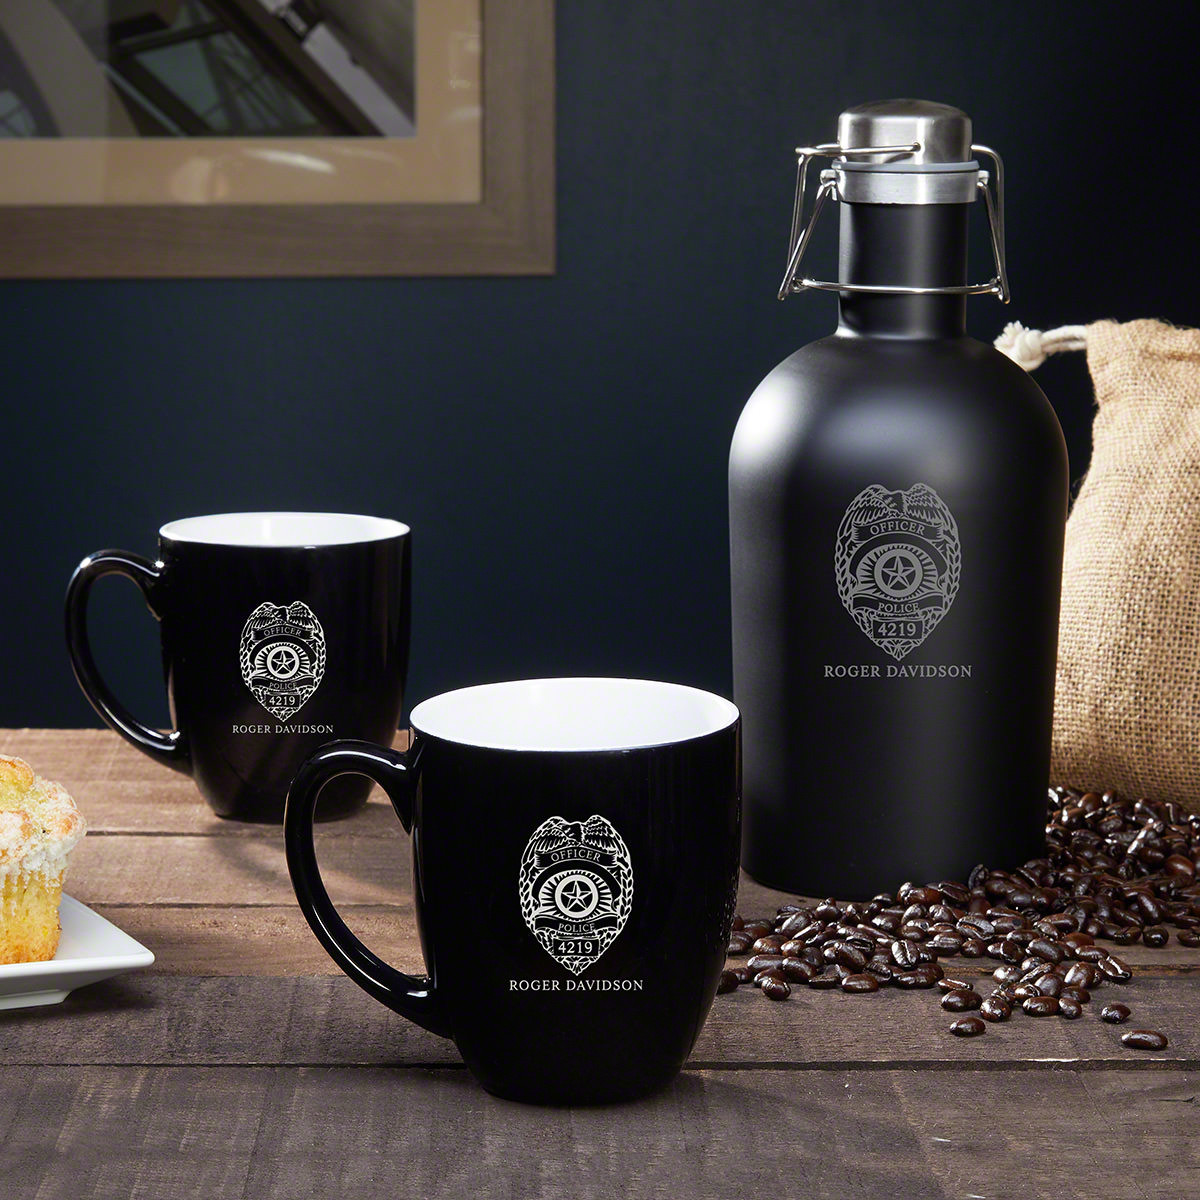 A police officer needs to be alert in order to succeed at his job. That's our personalized police gift set has the secret tools any officer needs to always be ready. An insulated coffee growler allows the police officer in your life to always have a war #mug